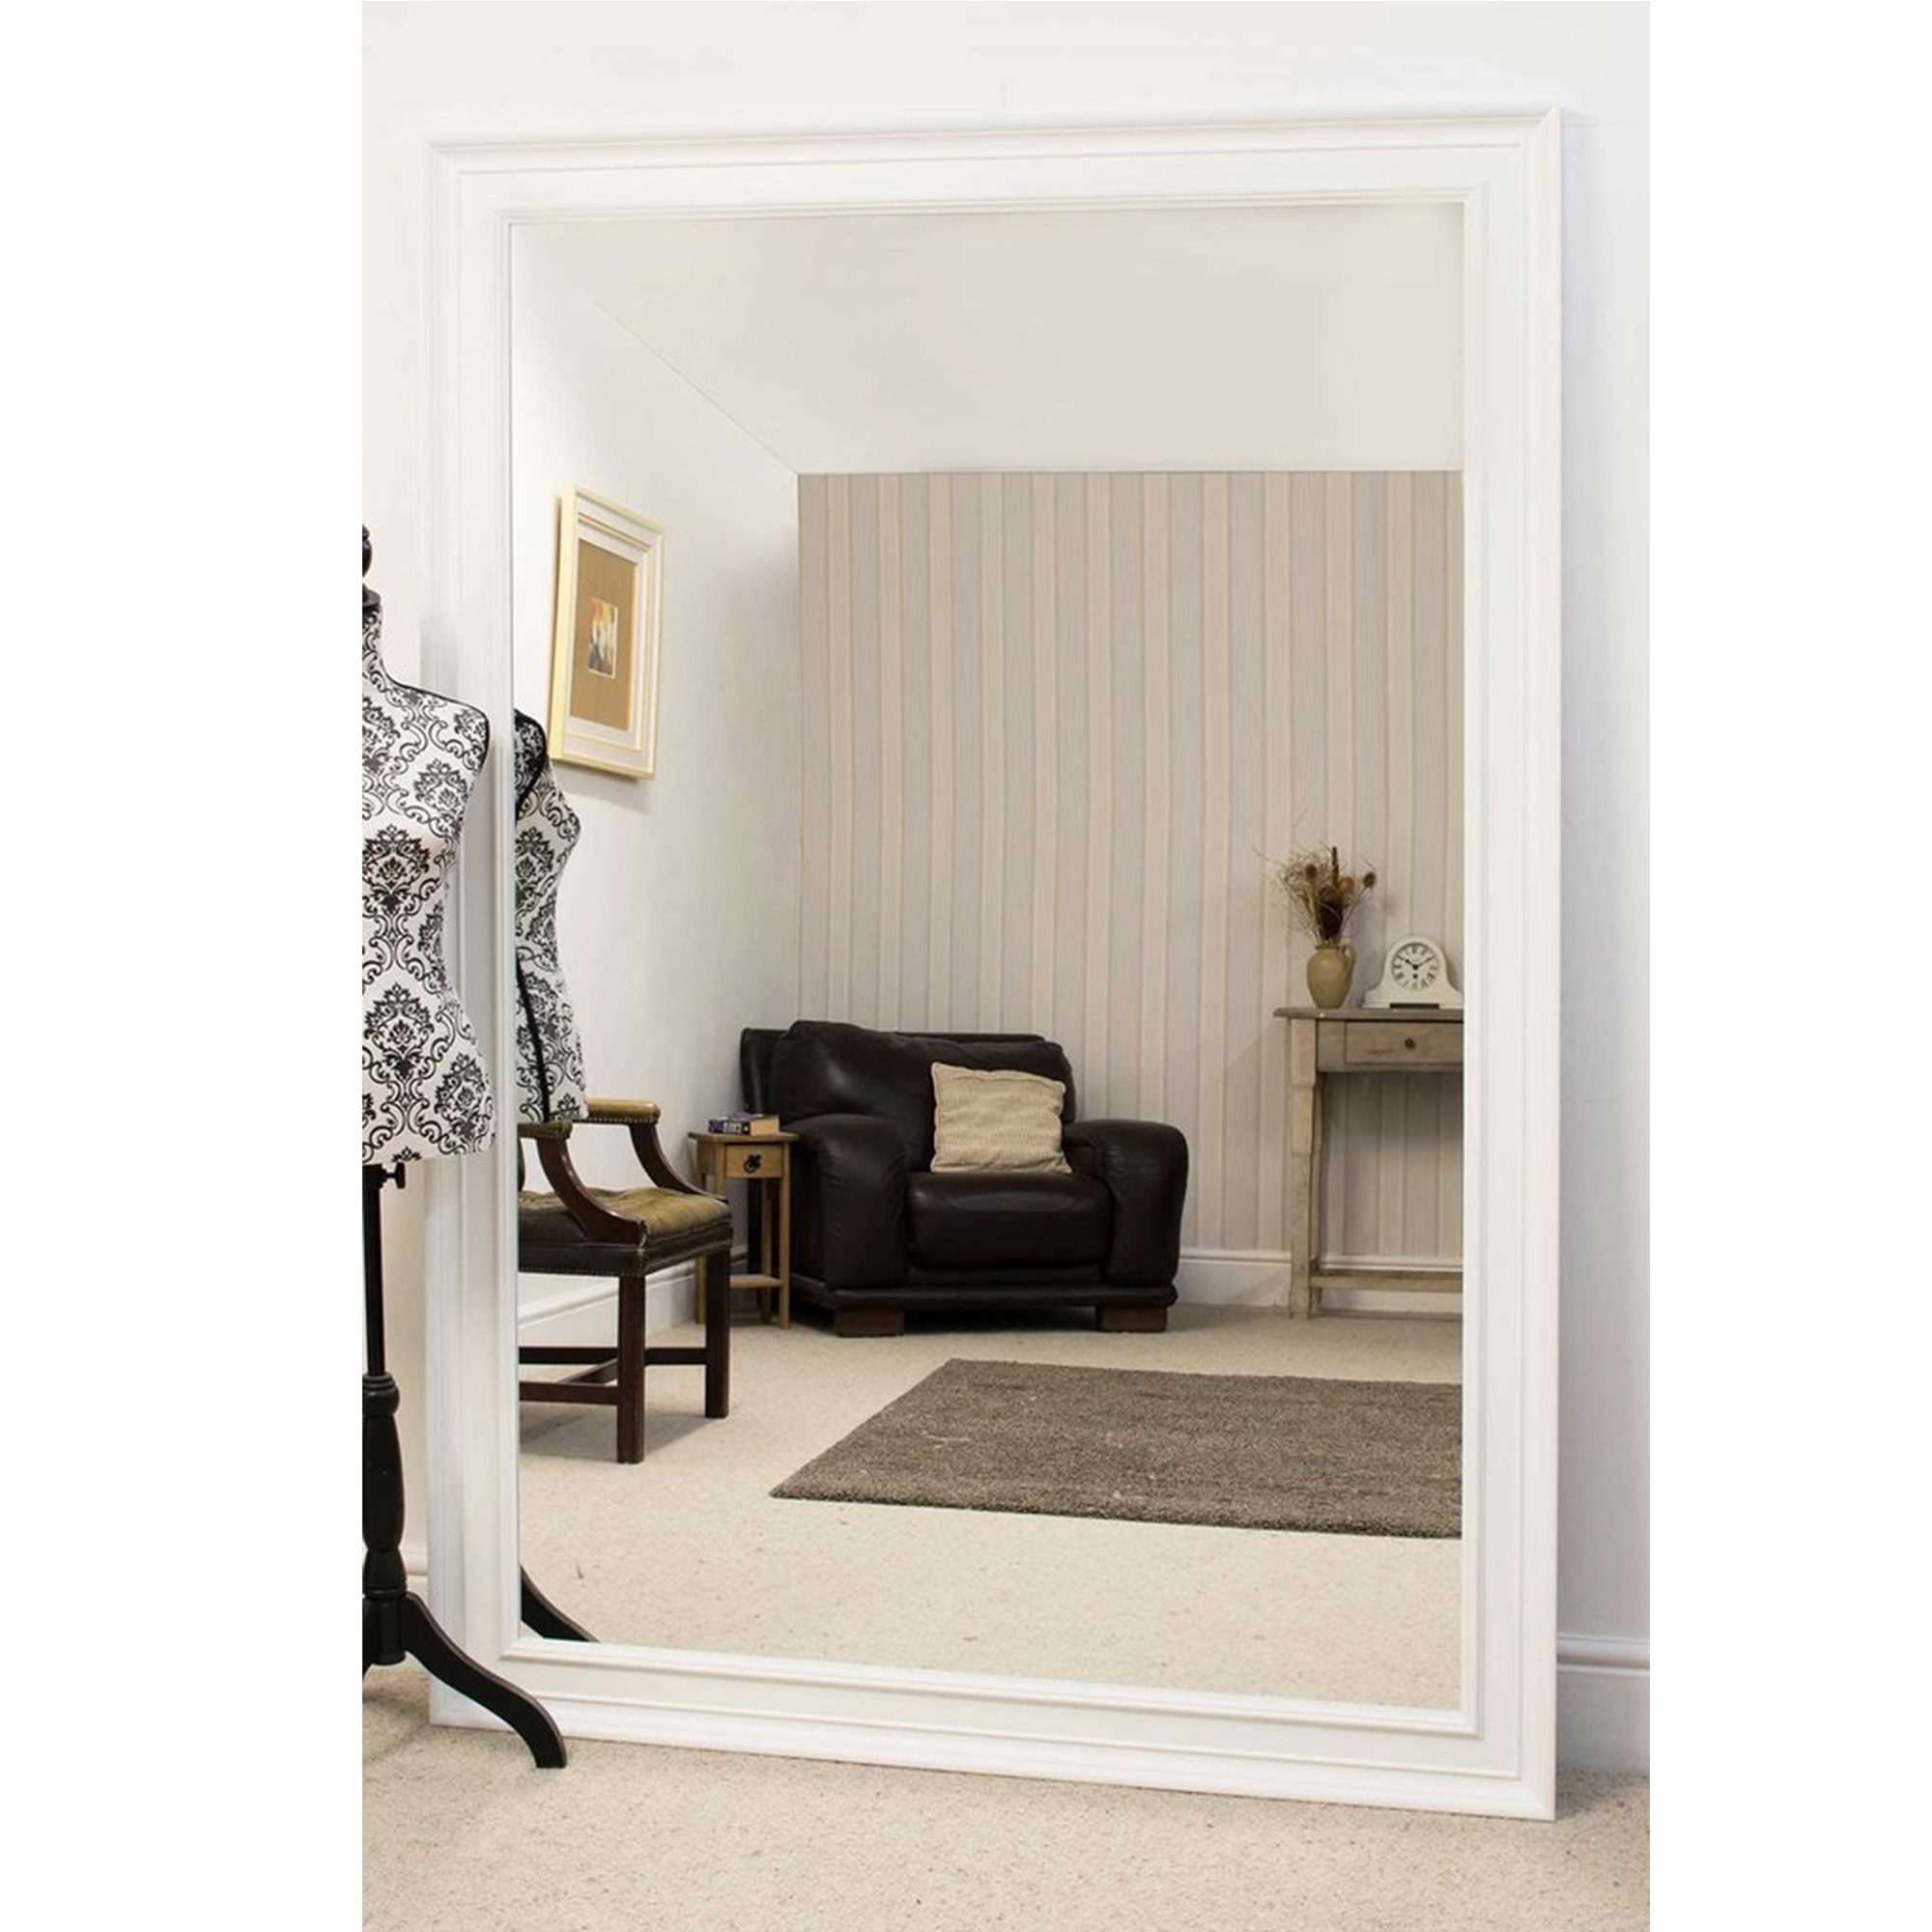 Large white antique french style mirror ornate white mirrors for Antique style wall mirror